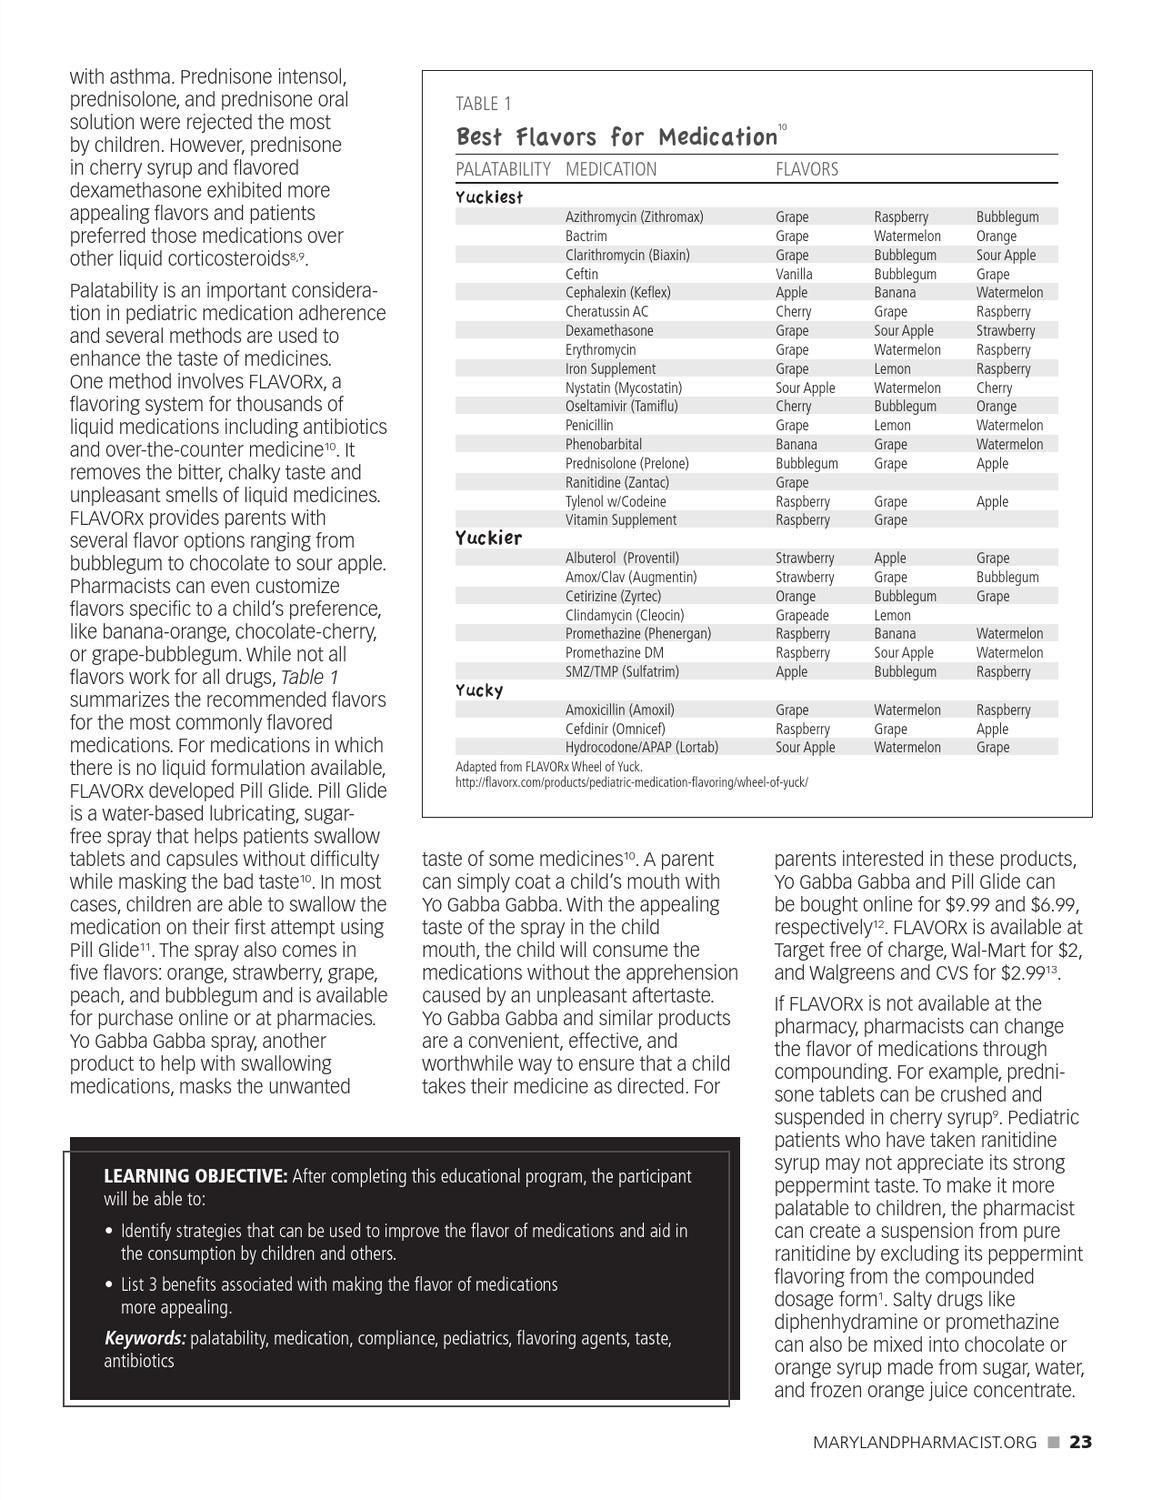 Maryland Pharmacist l Fall 2012 by Graphtech - issuu